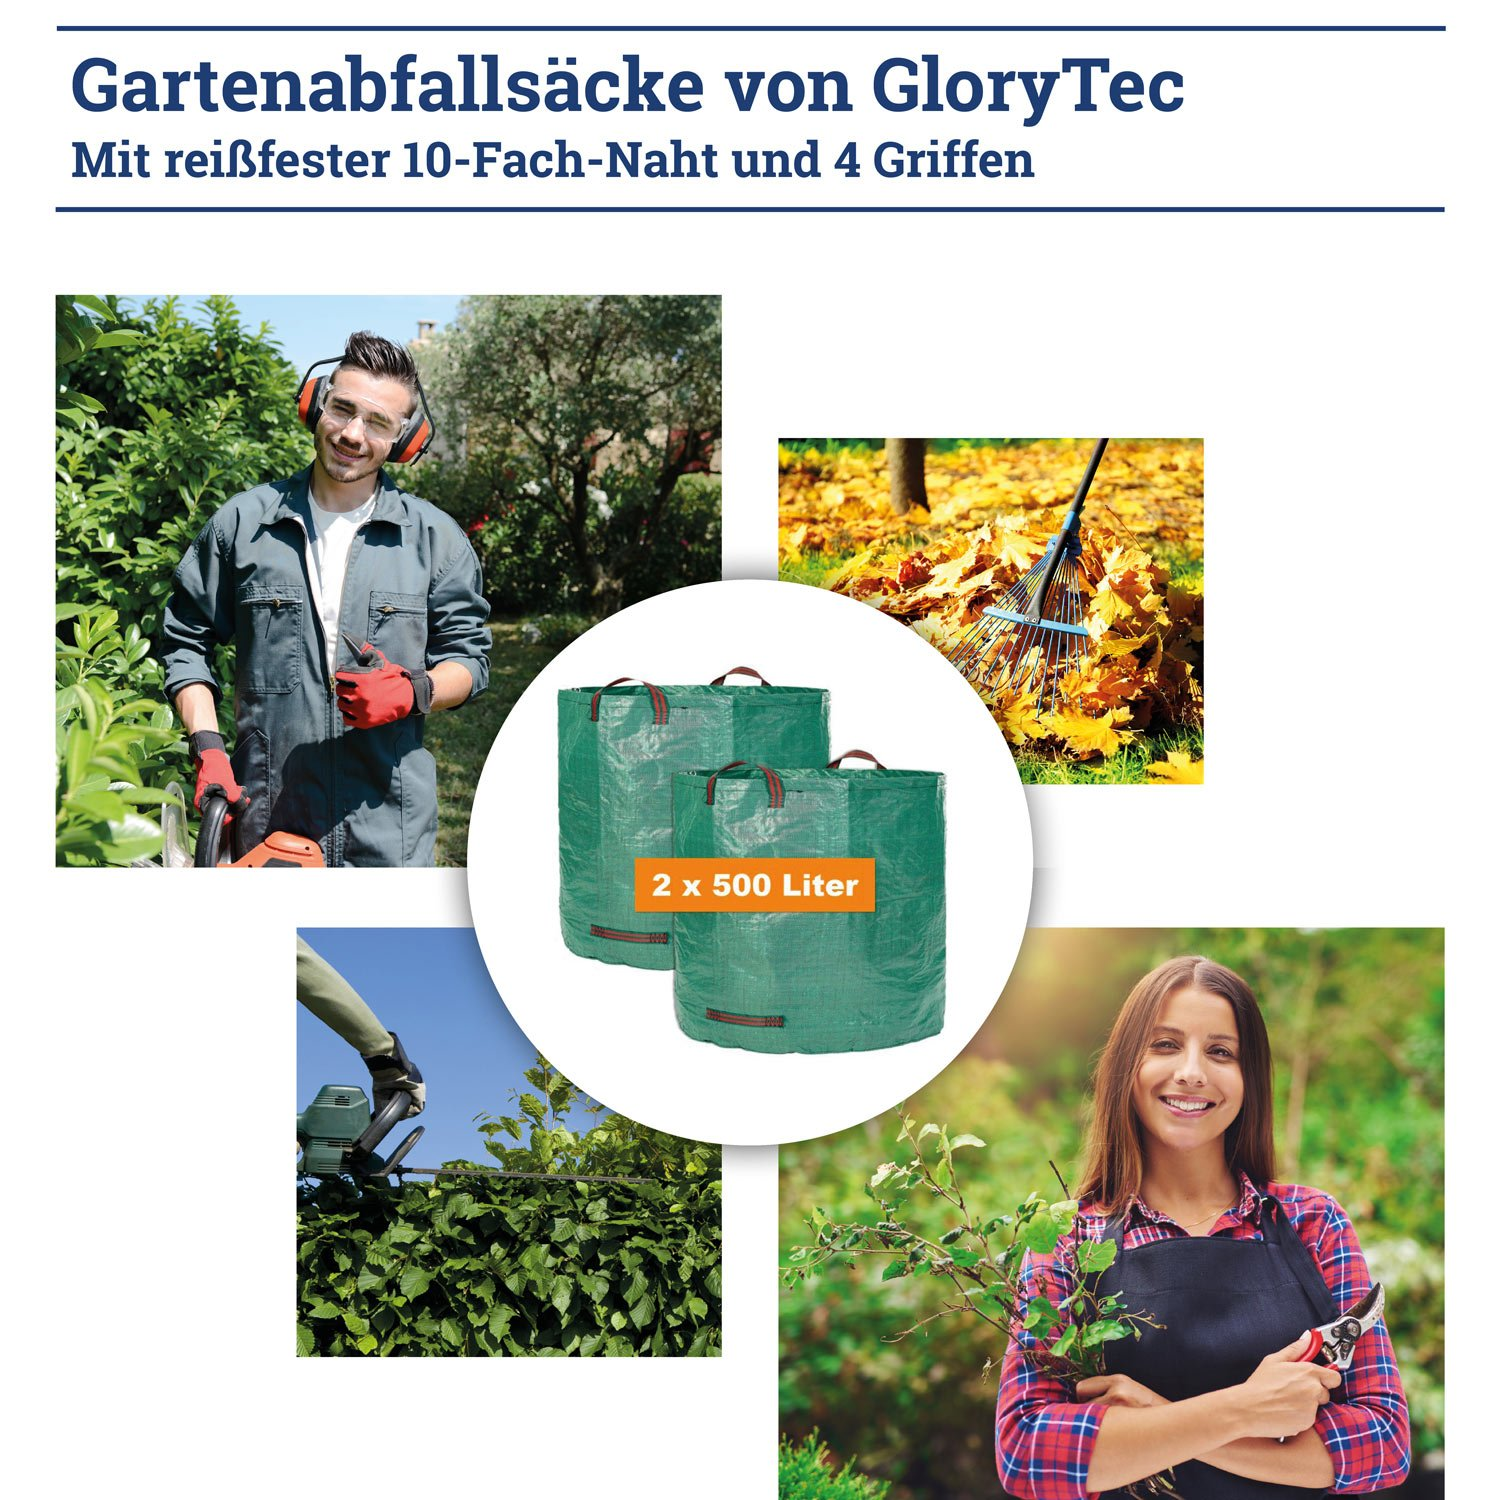 GloryTec XXL Garden Bags 2x500 Liters - Price-Performance Winner 2018* - Premium Garden Storage Bag Set - Sturdy Garden Bag Made of Extremely Robust Polypropylene Fabric (PP) 150gsm - Garden Waste Bin Self-Standing and Foldable 20x24(inches)